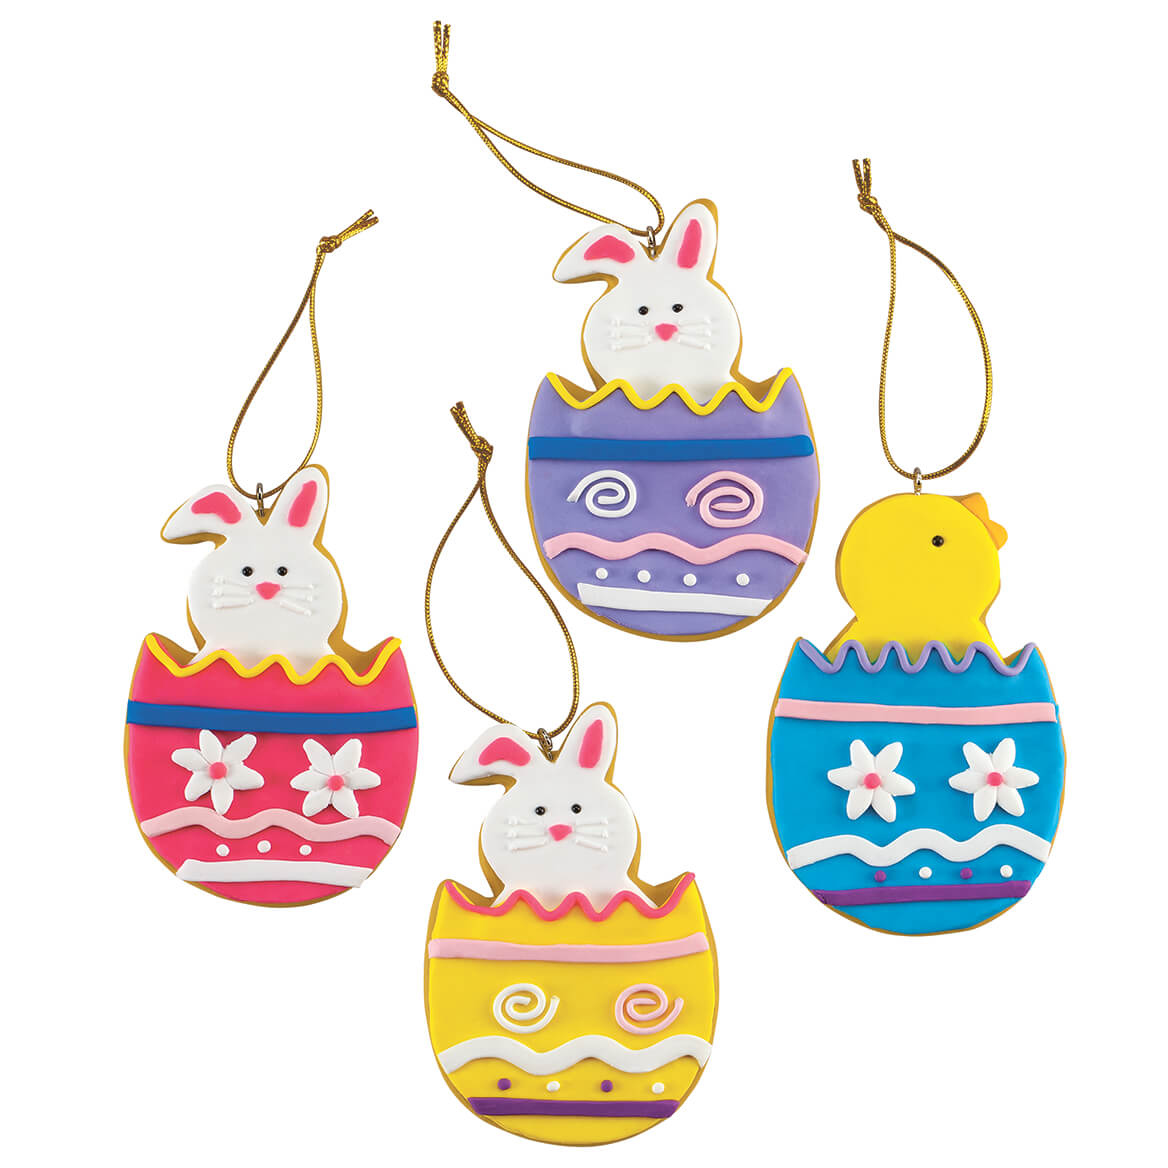 Claydough Easter Ornaments, Set of 12 by Holiday Peak™-371224